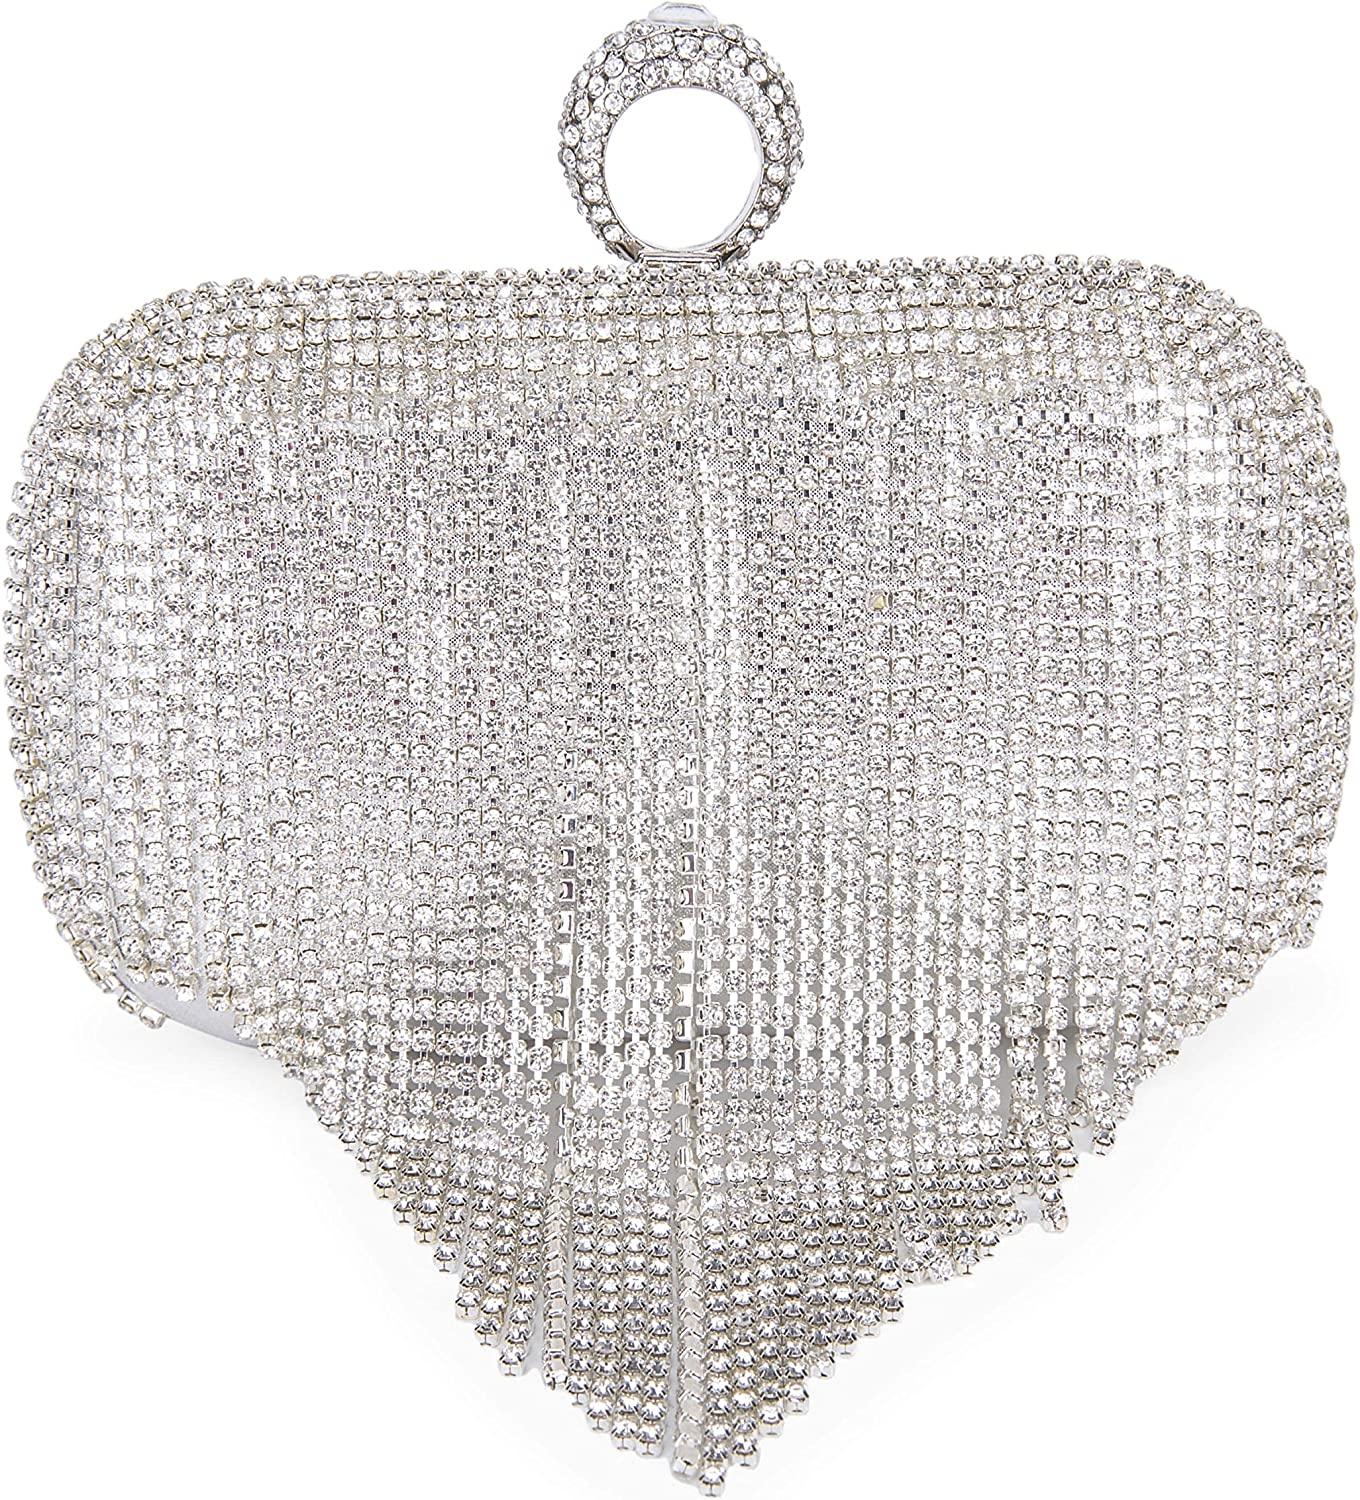 Clocolor Crystal Clutch Purses Evening Clutch Bag Rhinestone Series-Dazzling Ring Evening Bags for Wedding Party Purses